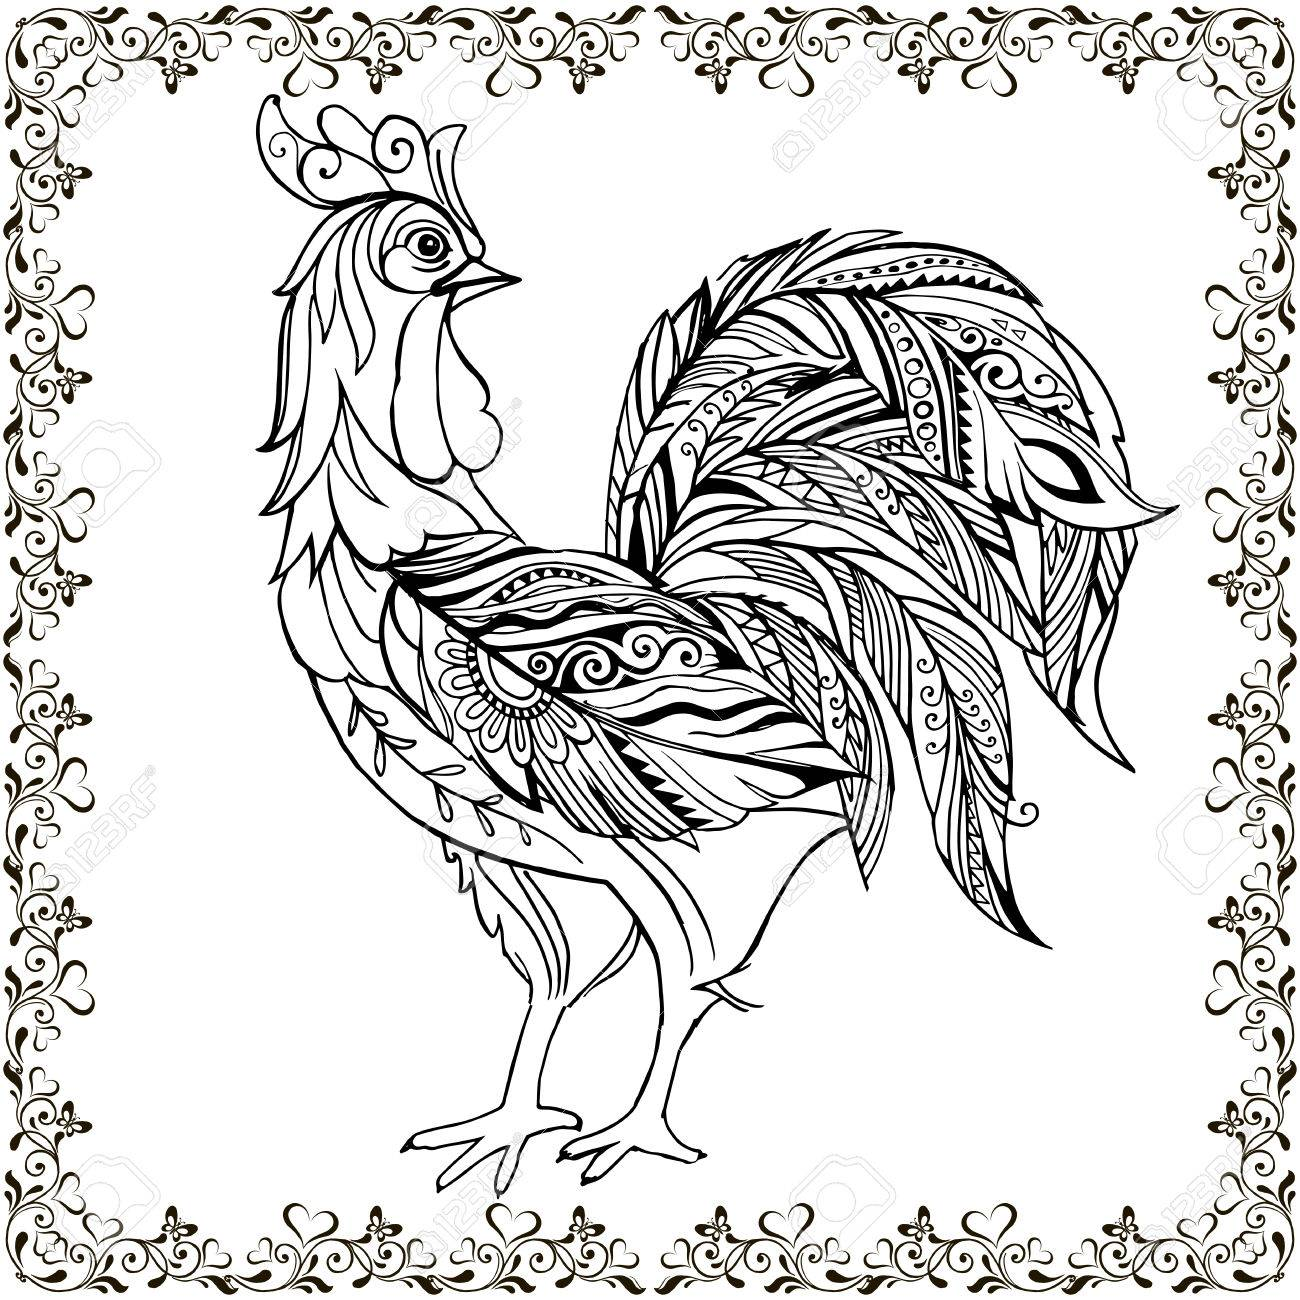 Drawing Hands Monochrome Decorative Rooster In Floral Frame ...